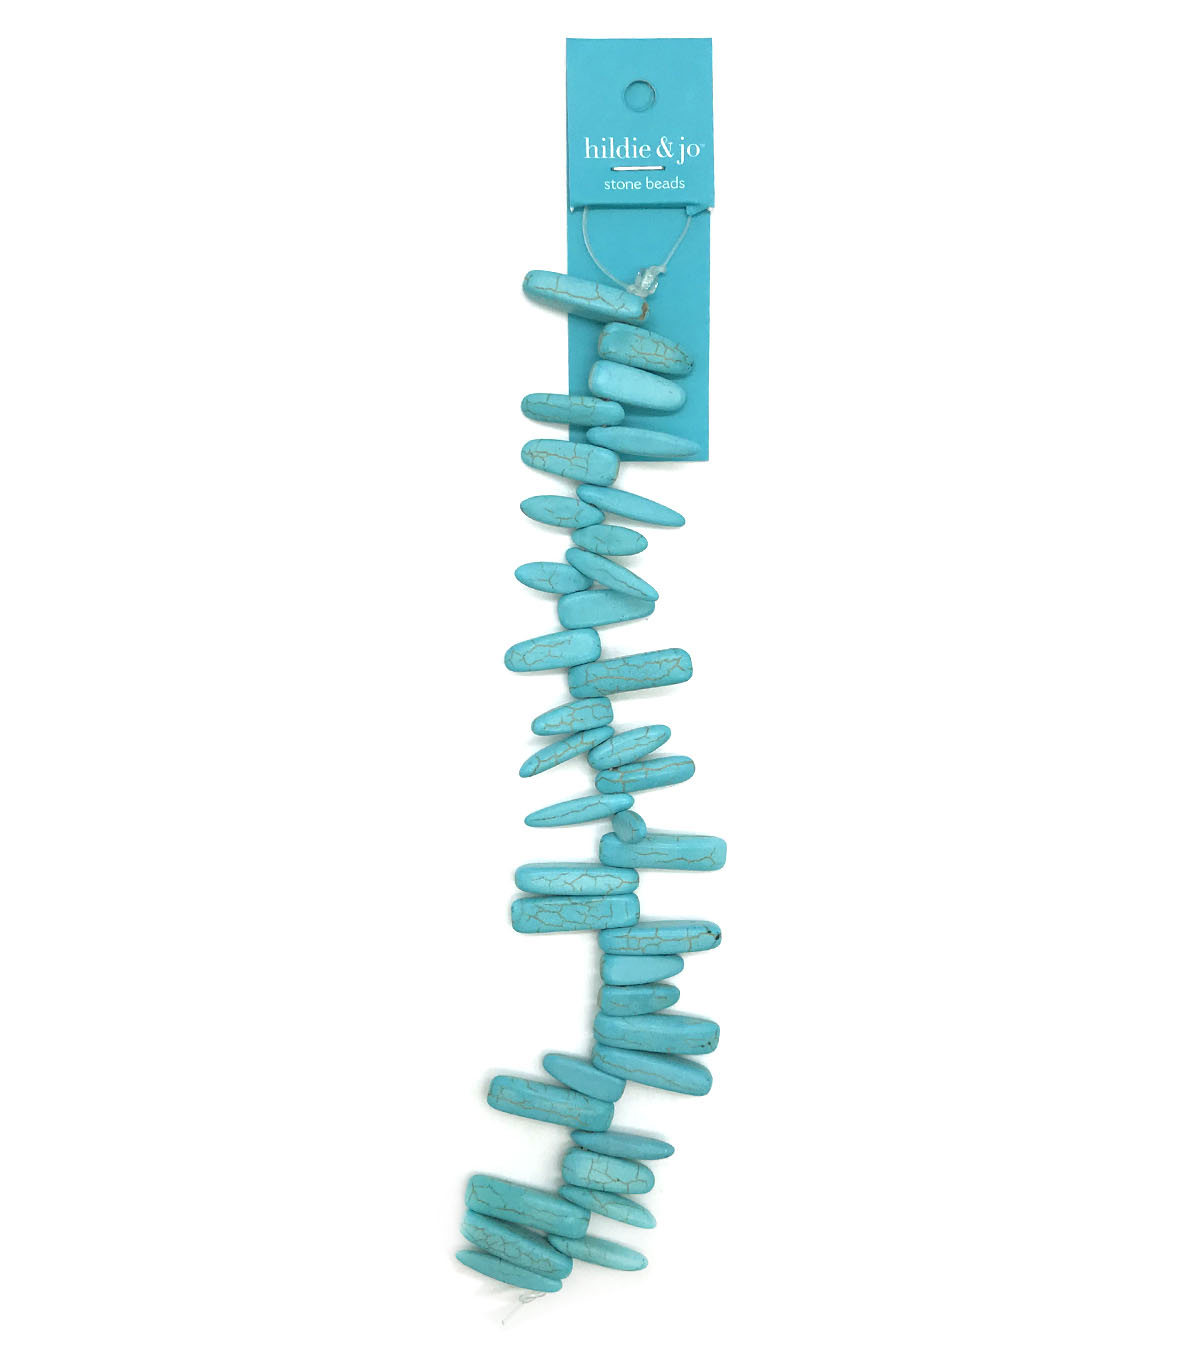 hildie & jo™ 7'' Strung Beads-Turquoise Stone